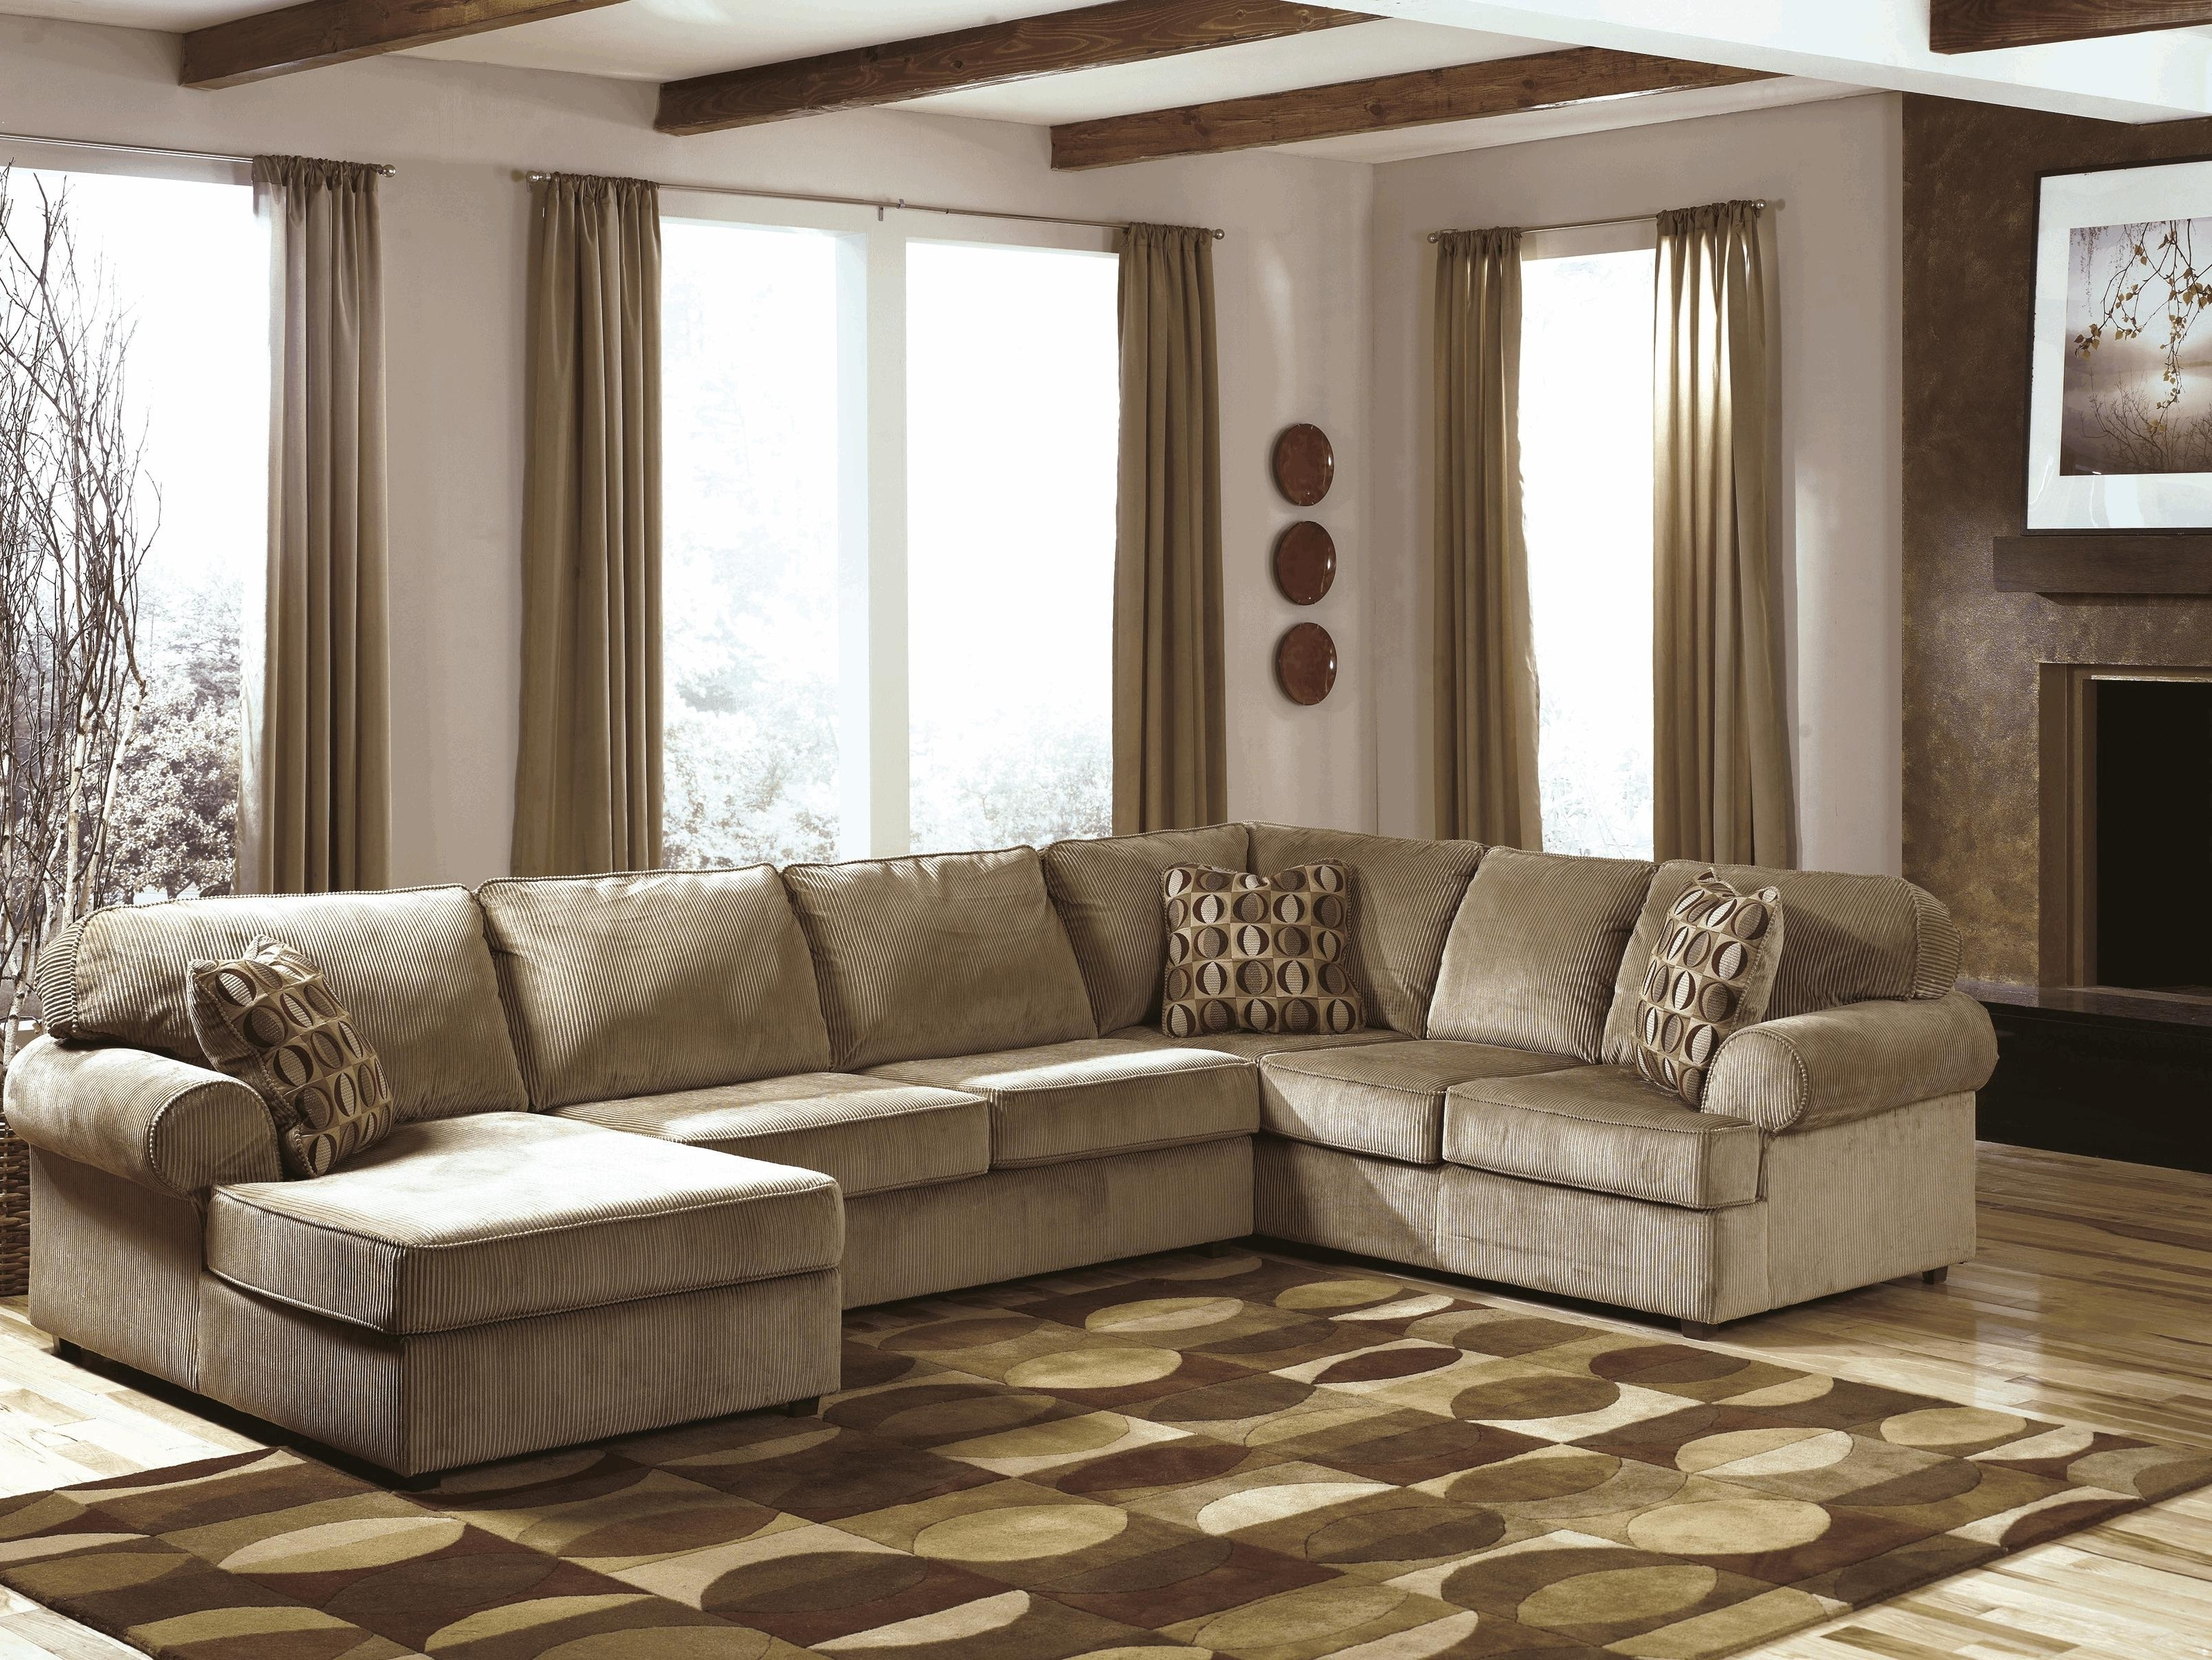 Restoration Hardware Sectional Sofas With Widely Used Decor Retro Leather Sofas And Tufted Sofa Chesterfield Sleeper (View 14 of 15)